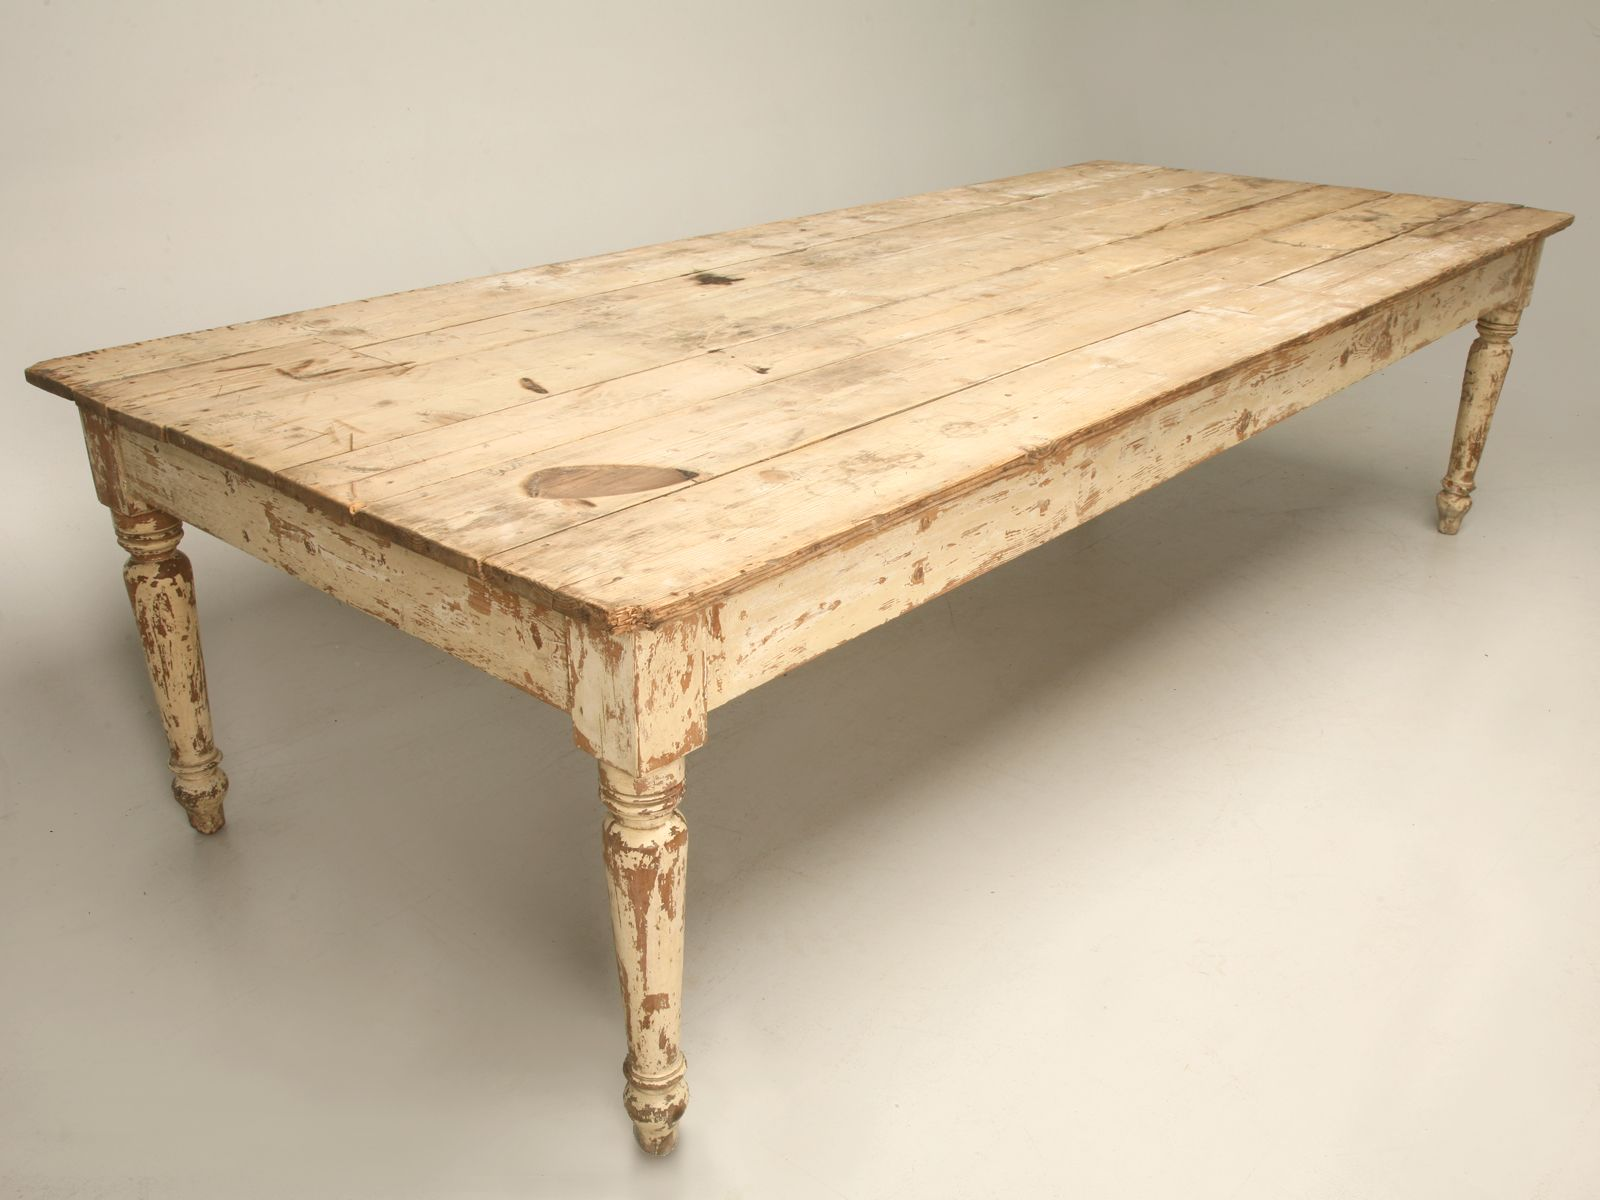 Antique farm dining table - Antique Scrubbed Pine Farm Table